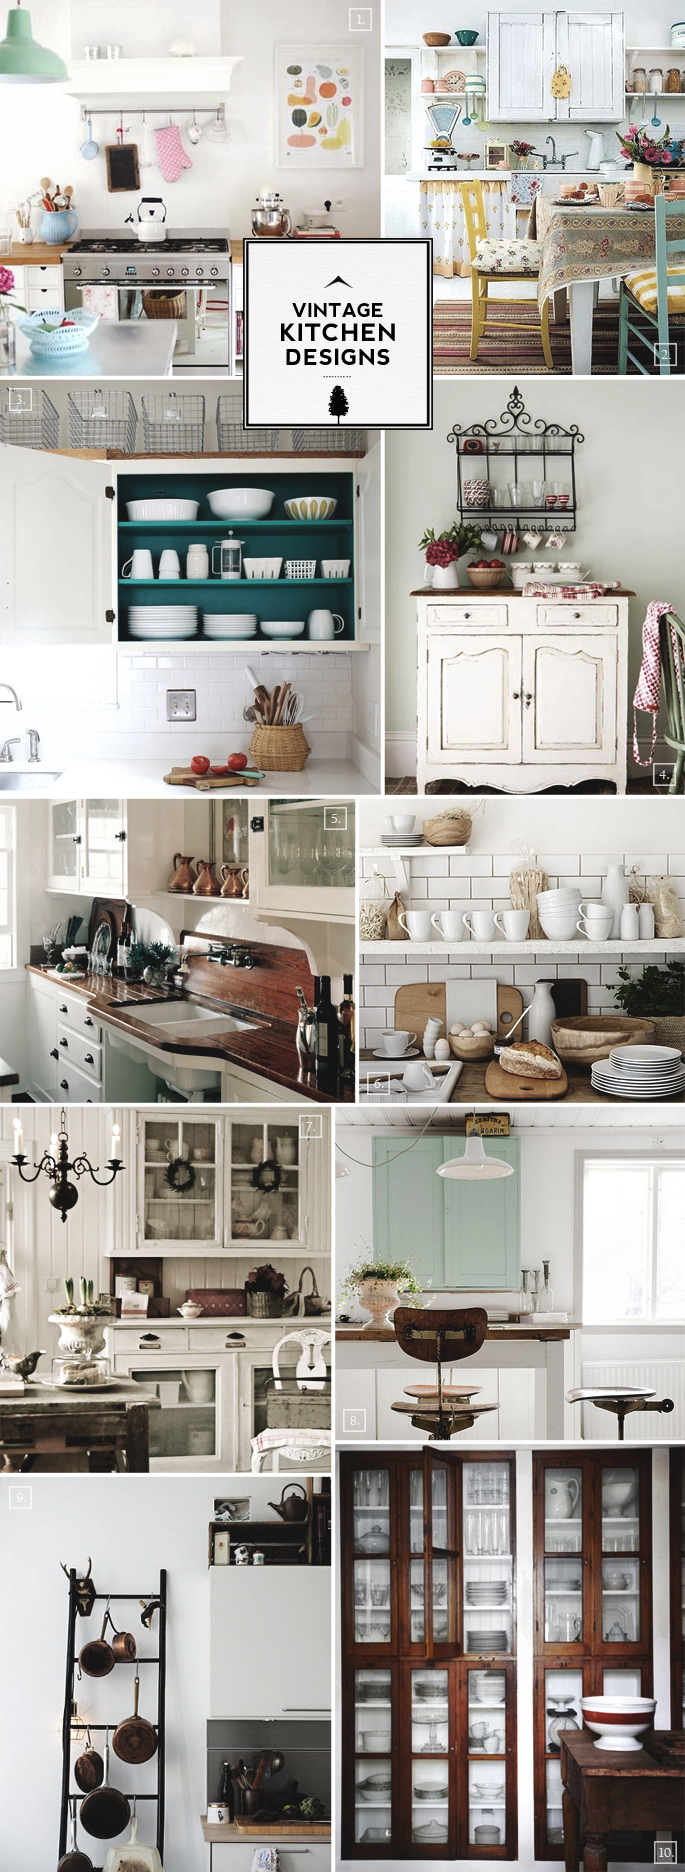 Vintage kitchen design accessories and decor ideas for Kitchen ideas vintage